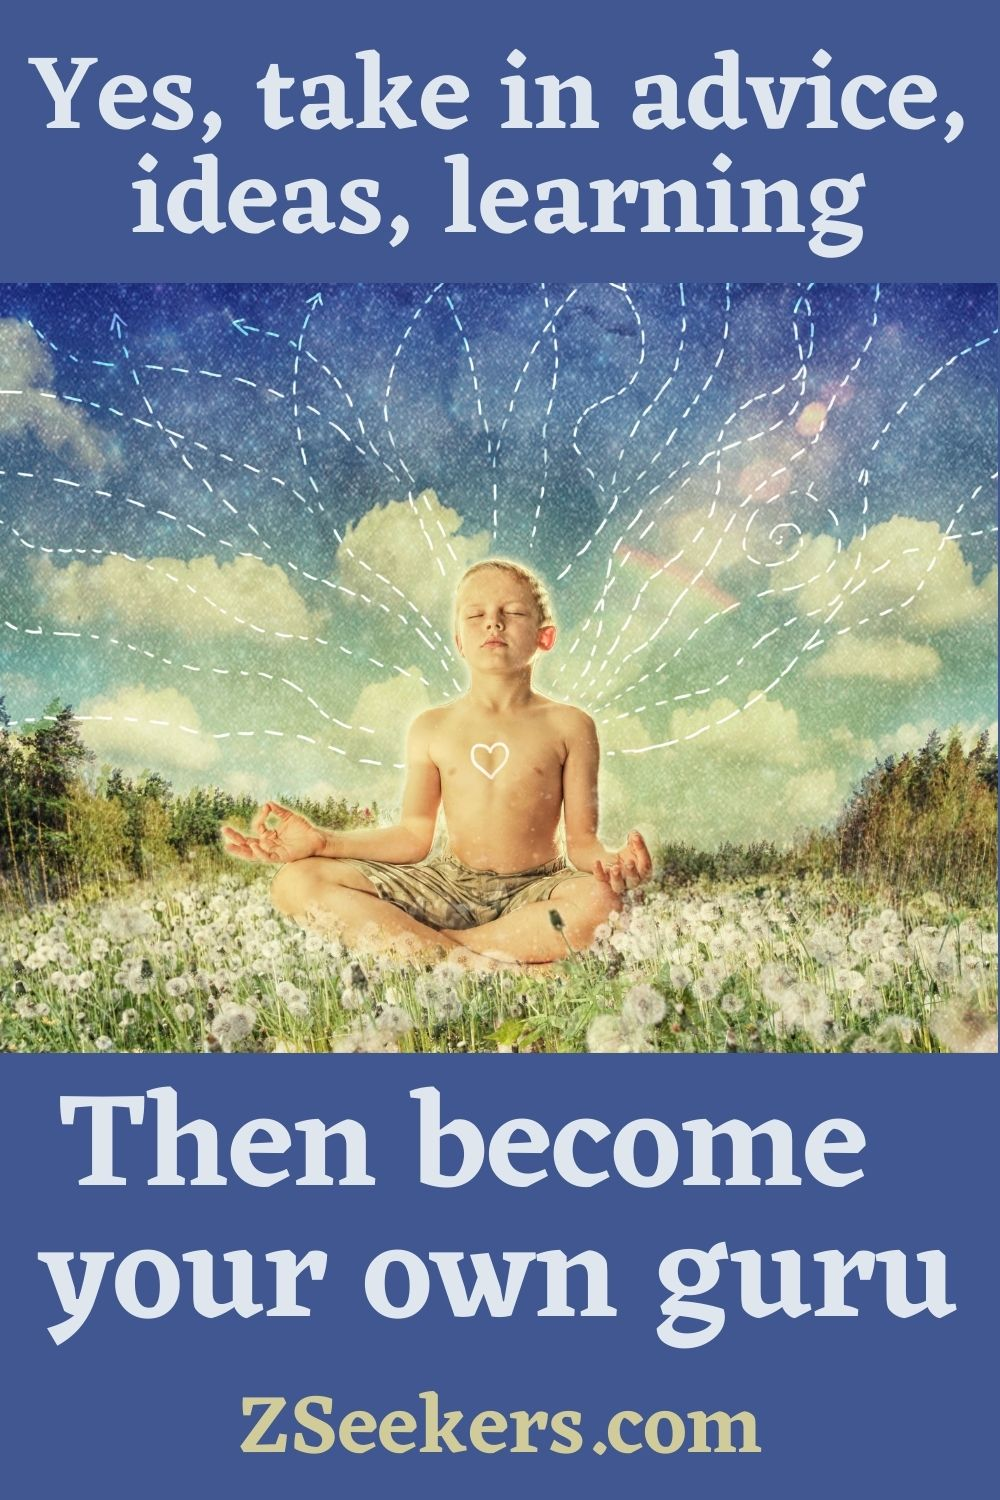 Yes, take in advice, ideas, learning, then become your own guru